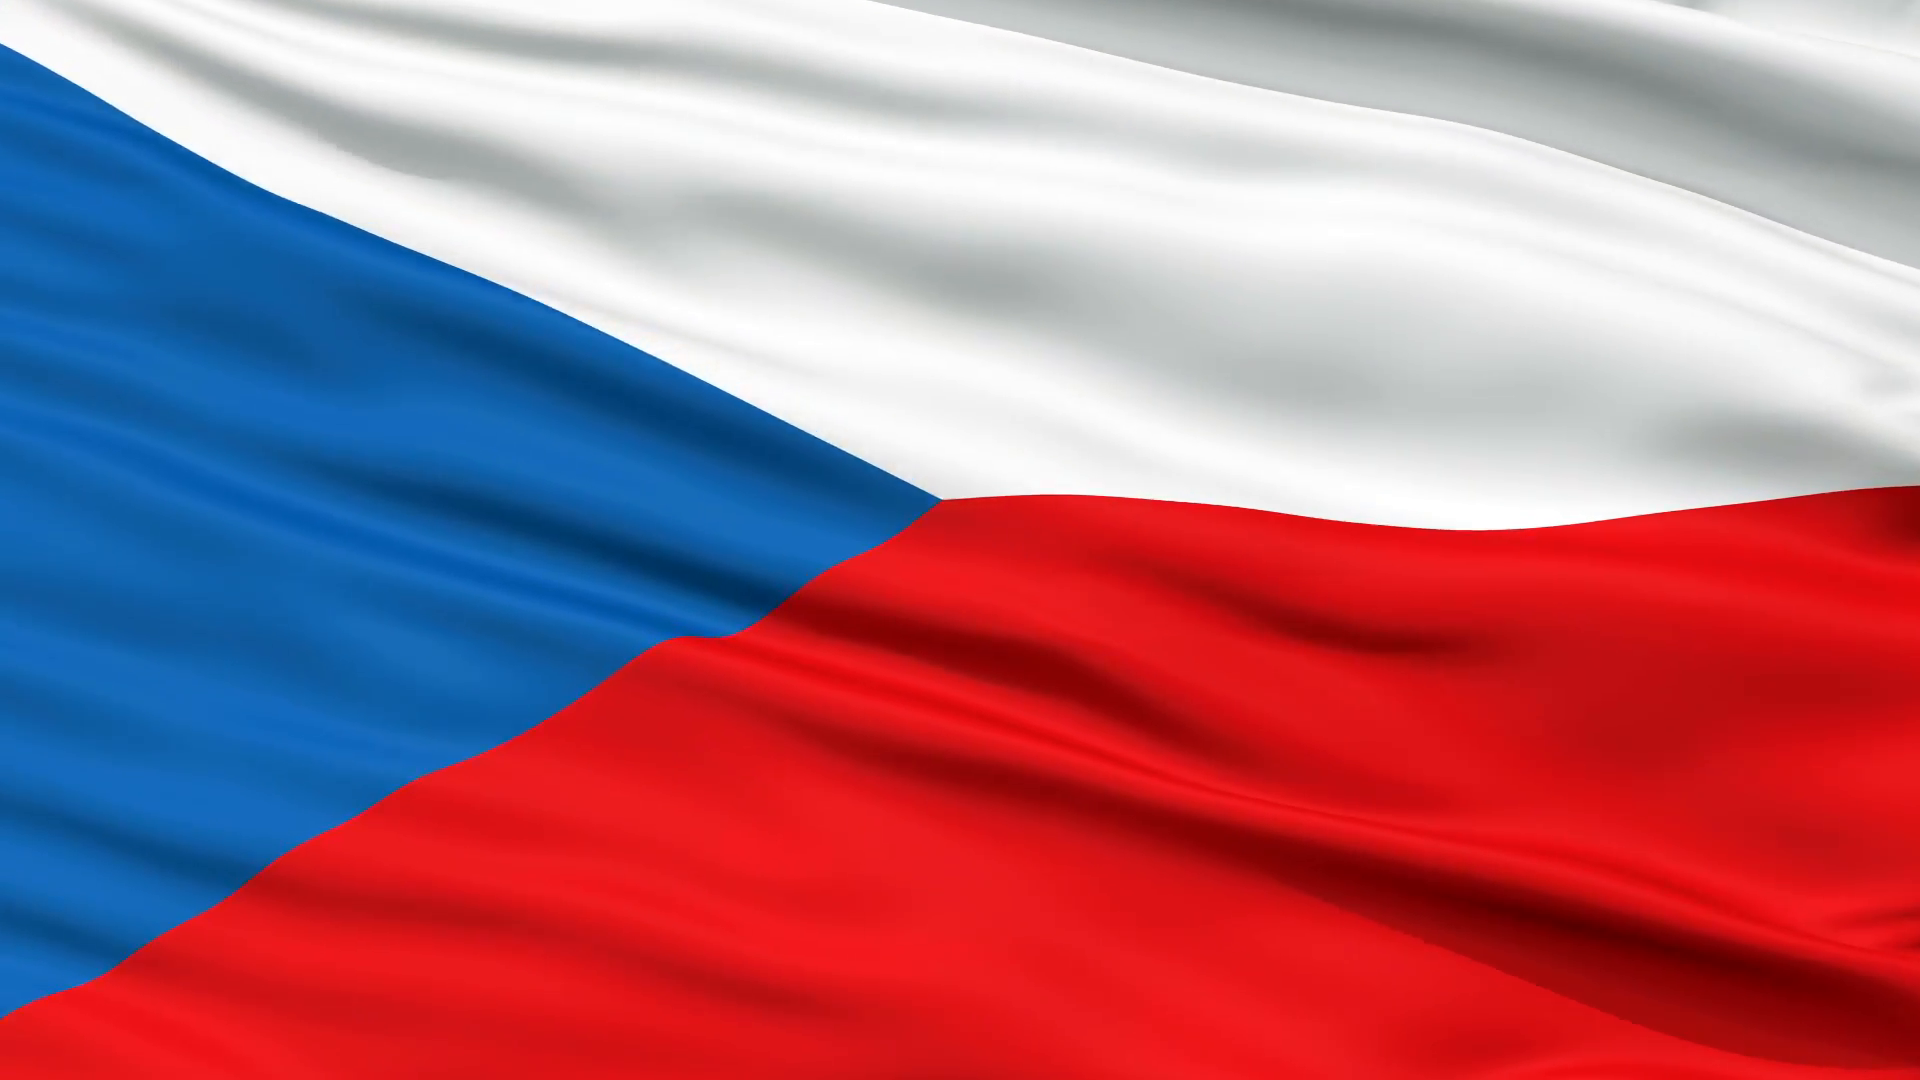 Czech Republic Flag Close Up Realistic Animation Seamless Loop 1920x1080